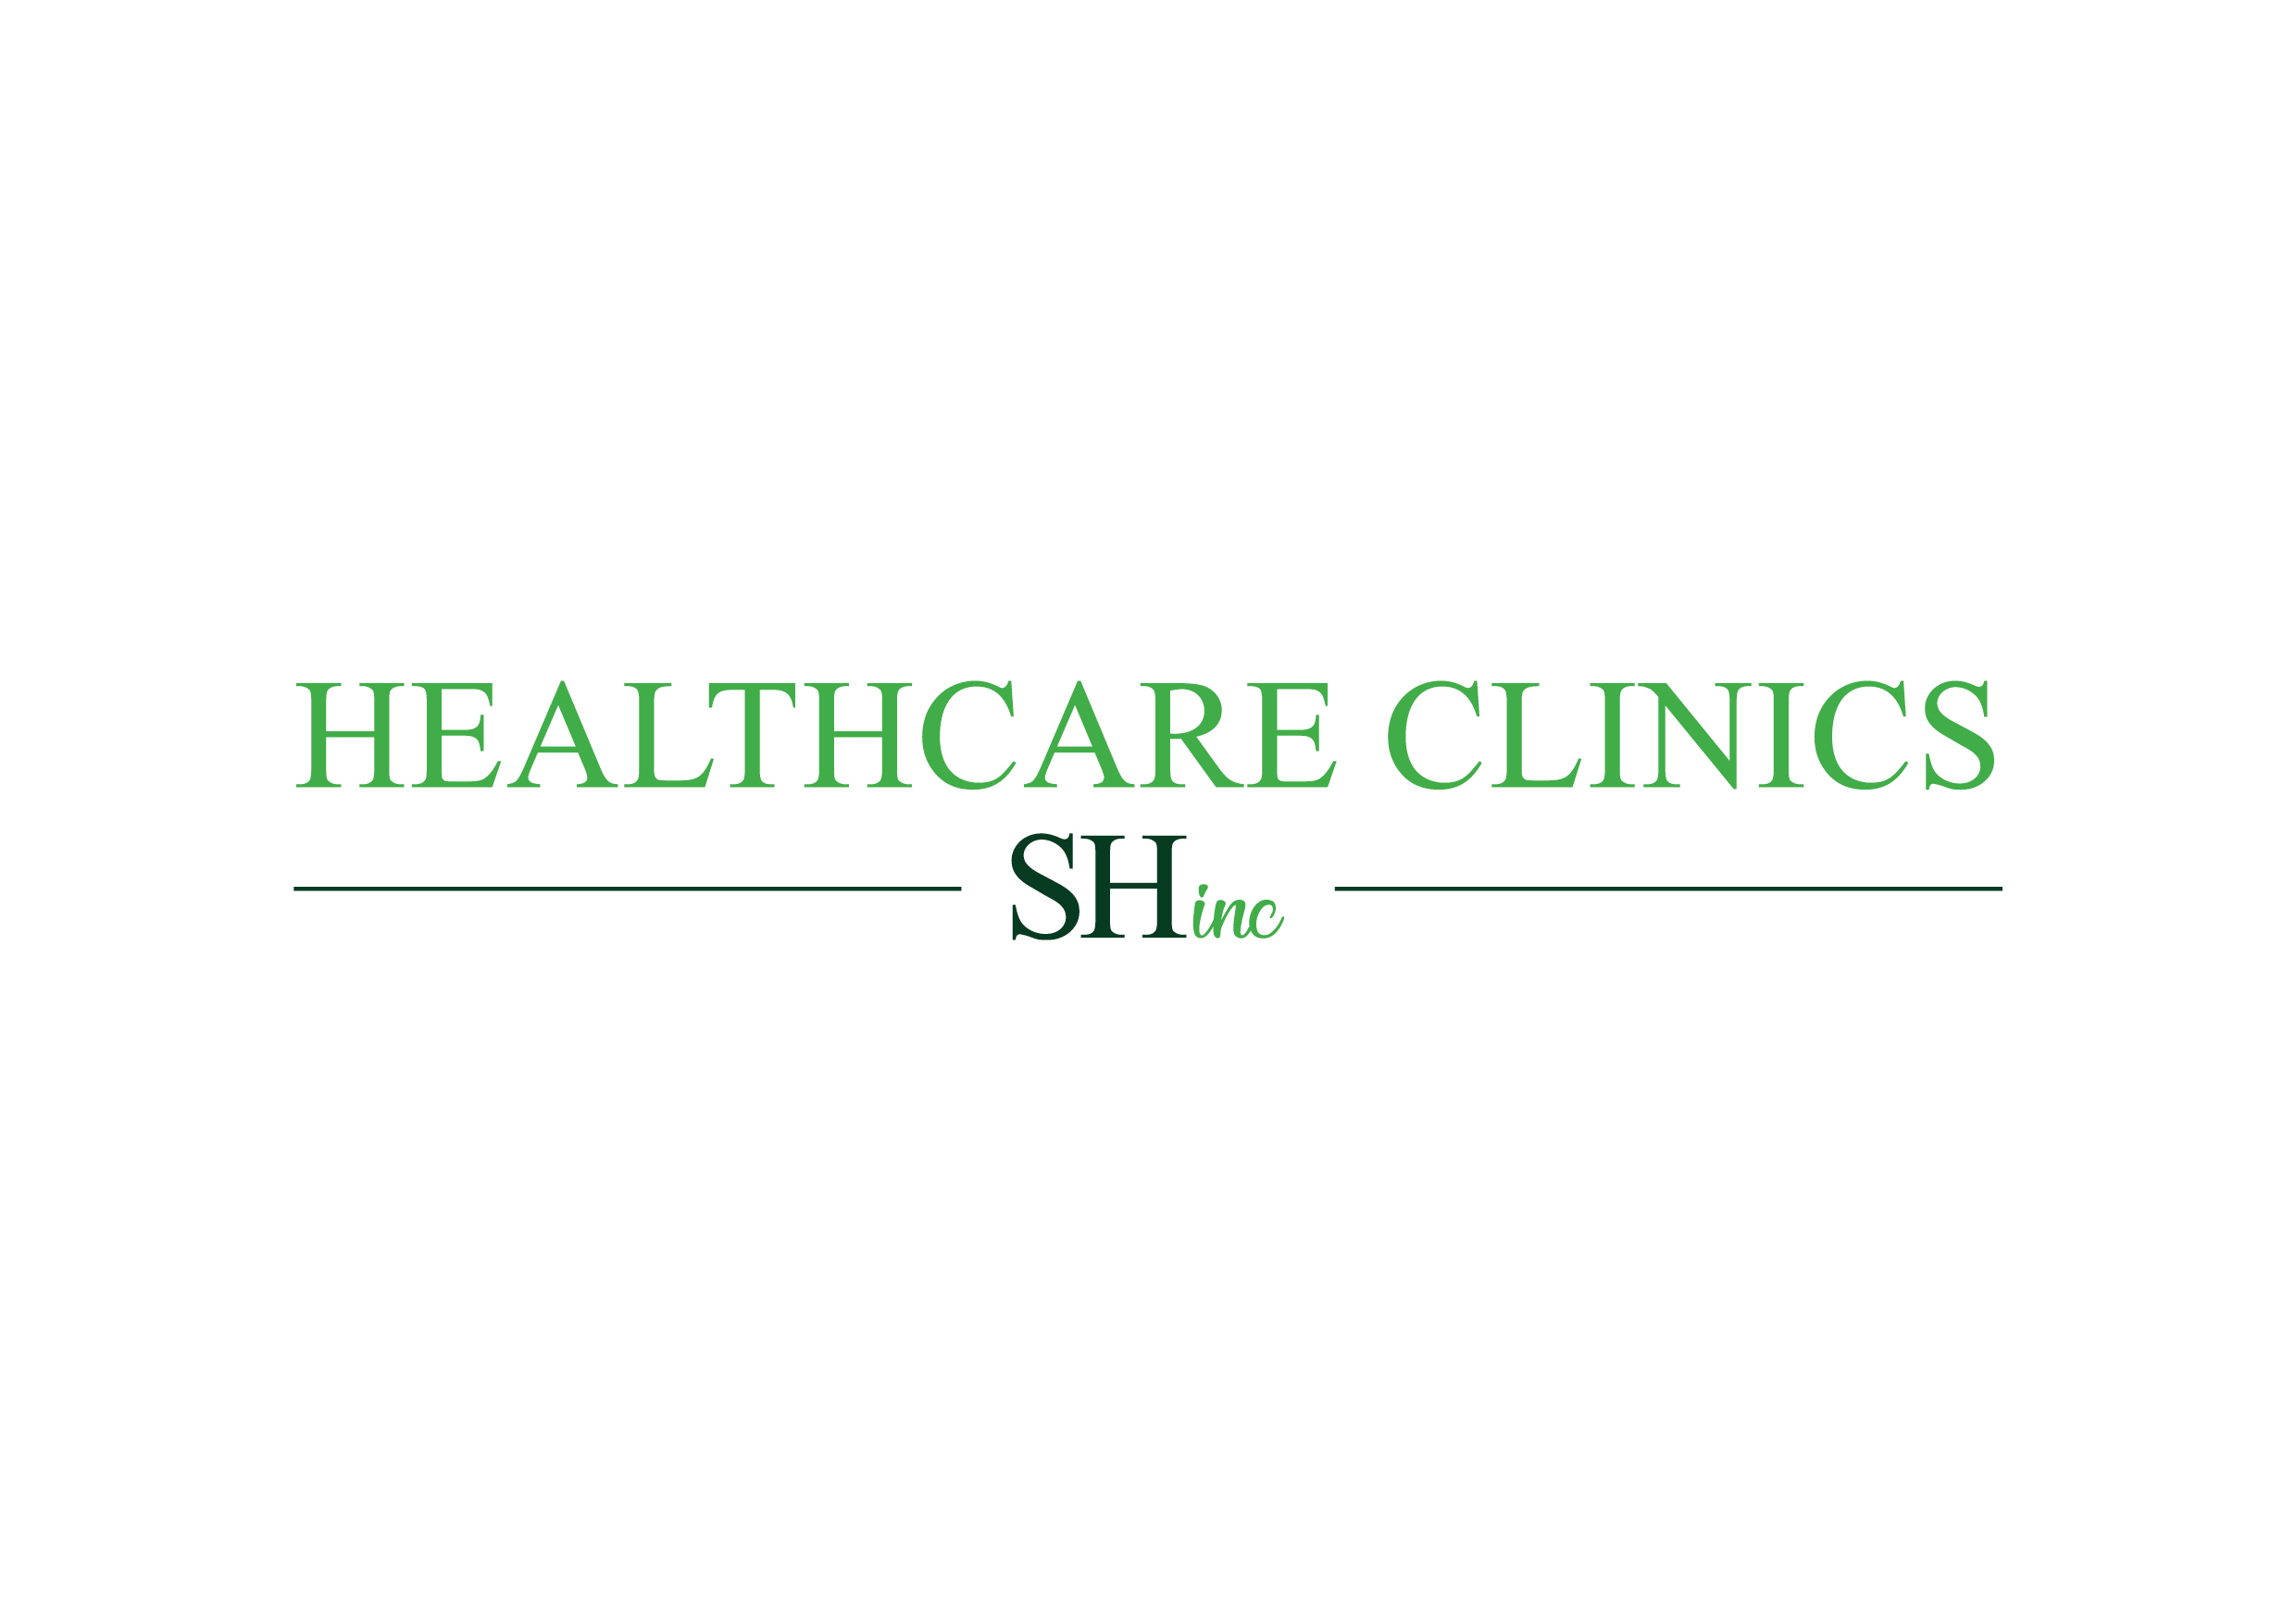 SH inc Healthcare Clinics